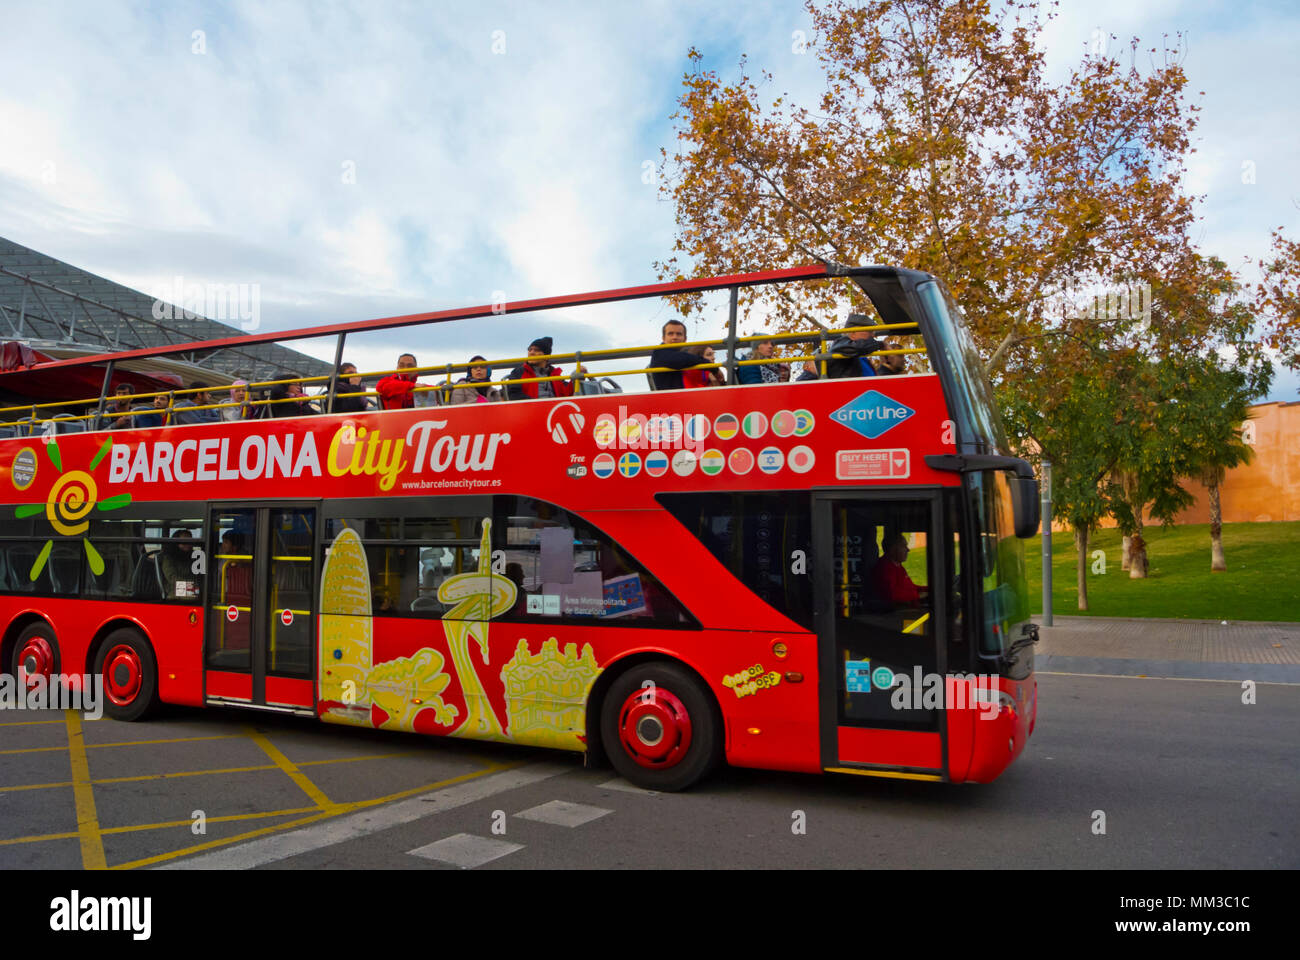 Barcelona City Tour, sightseeing bus passing Camp Nou stadium, Barcelona, Catalonia, Spain - Stock Image